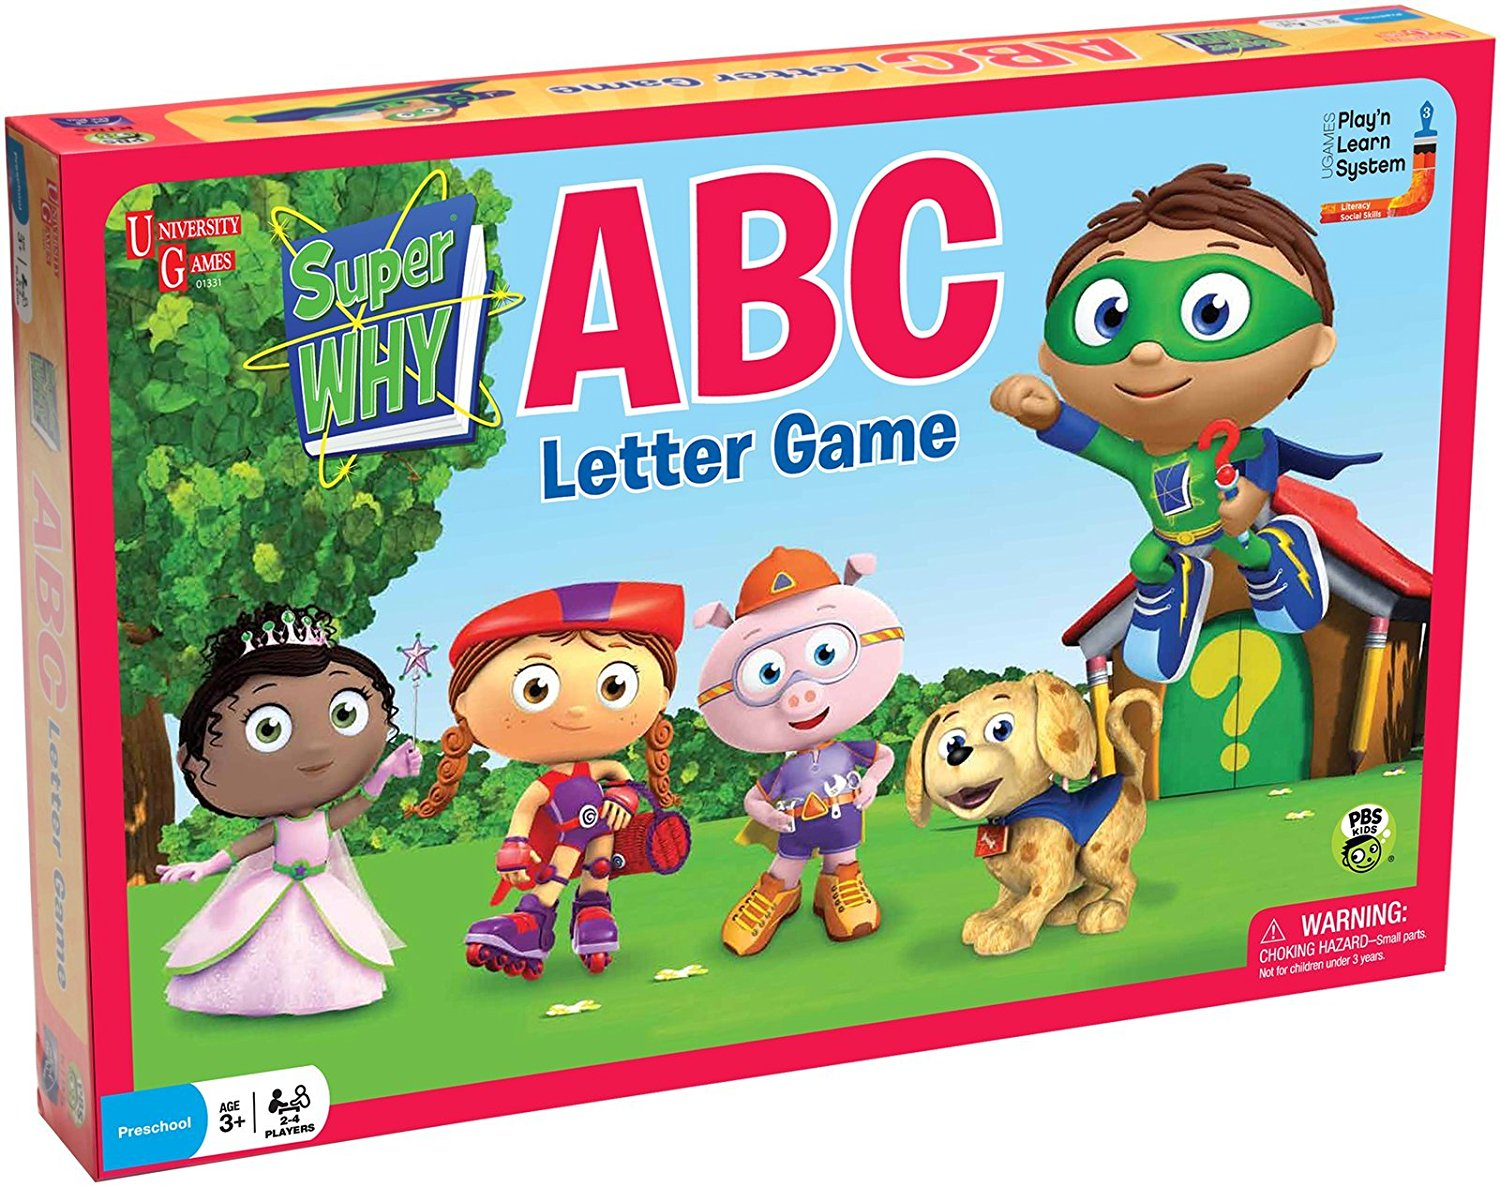 Super Why ABC Letter Game, Players practice key reading skills when they play the Super Why ABC Letter Game... by